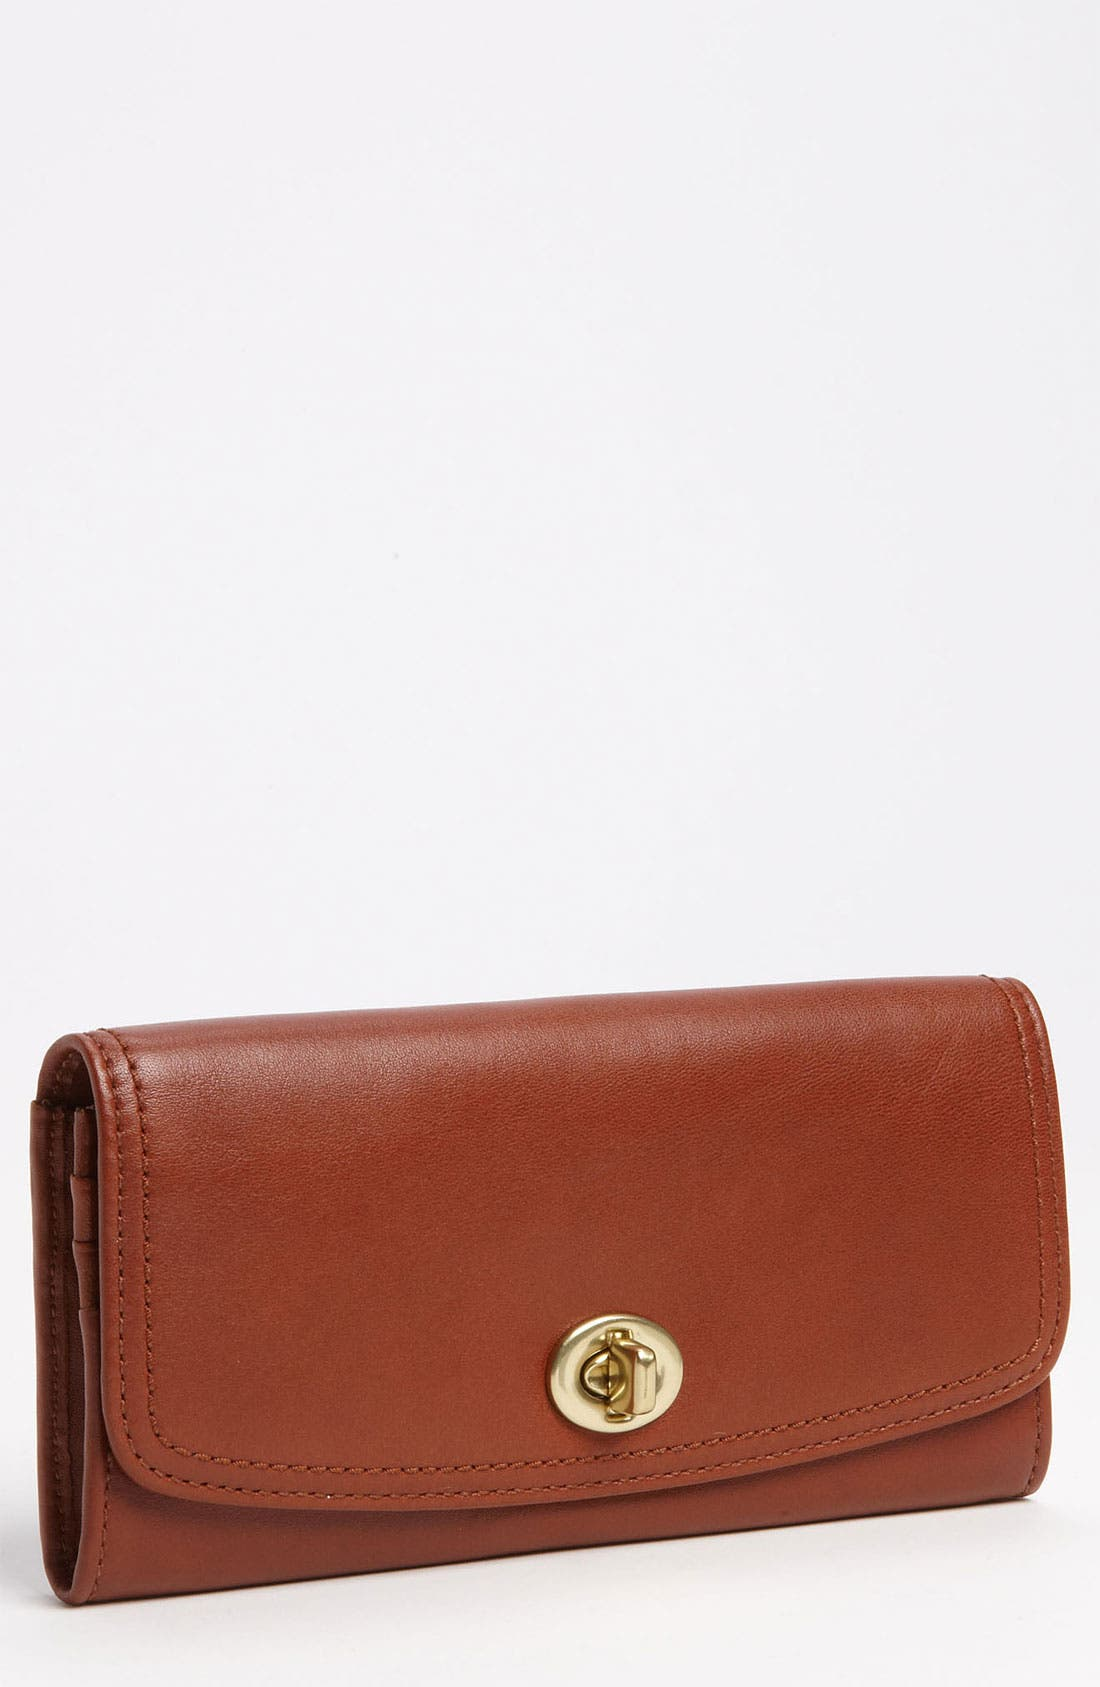 Alternate Image 1 Selected - COACH 'Legacy - Slim' Leather Envelope Wallet